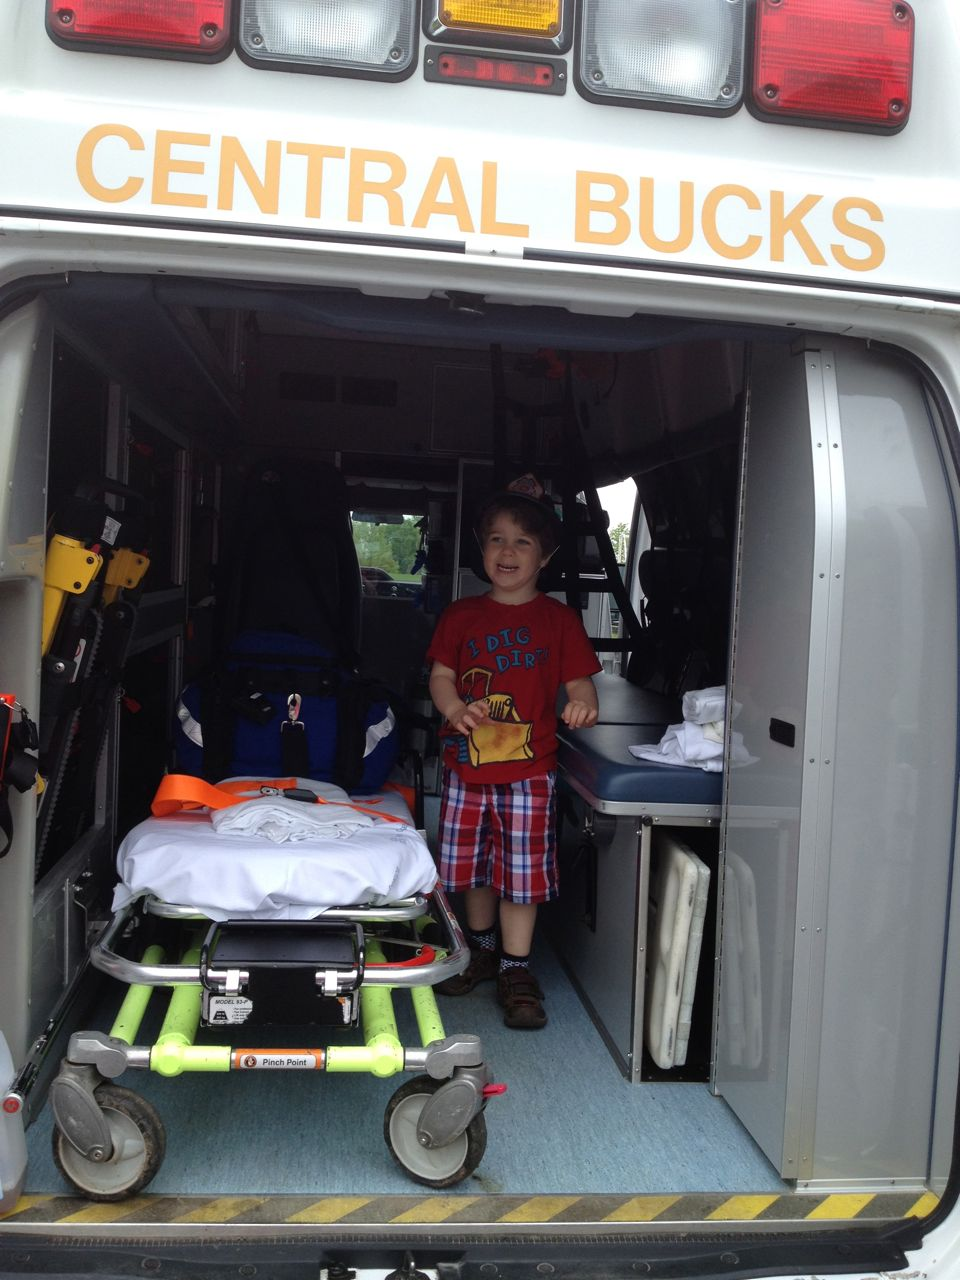 Adam in the back of the ambulance